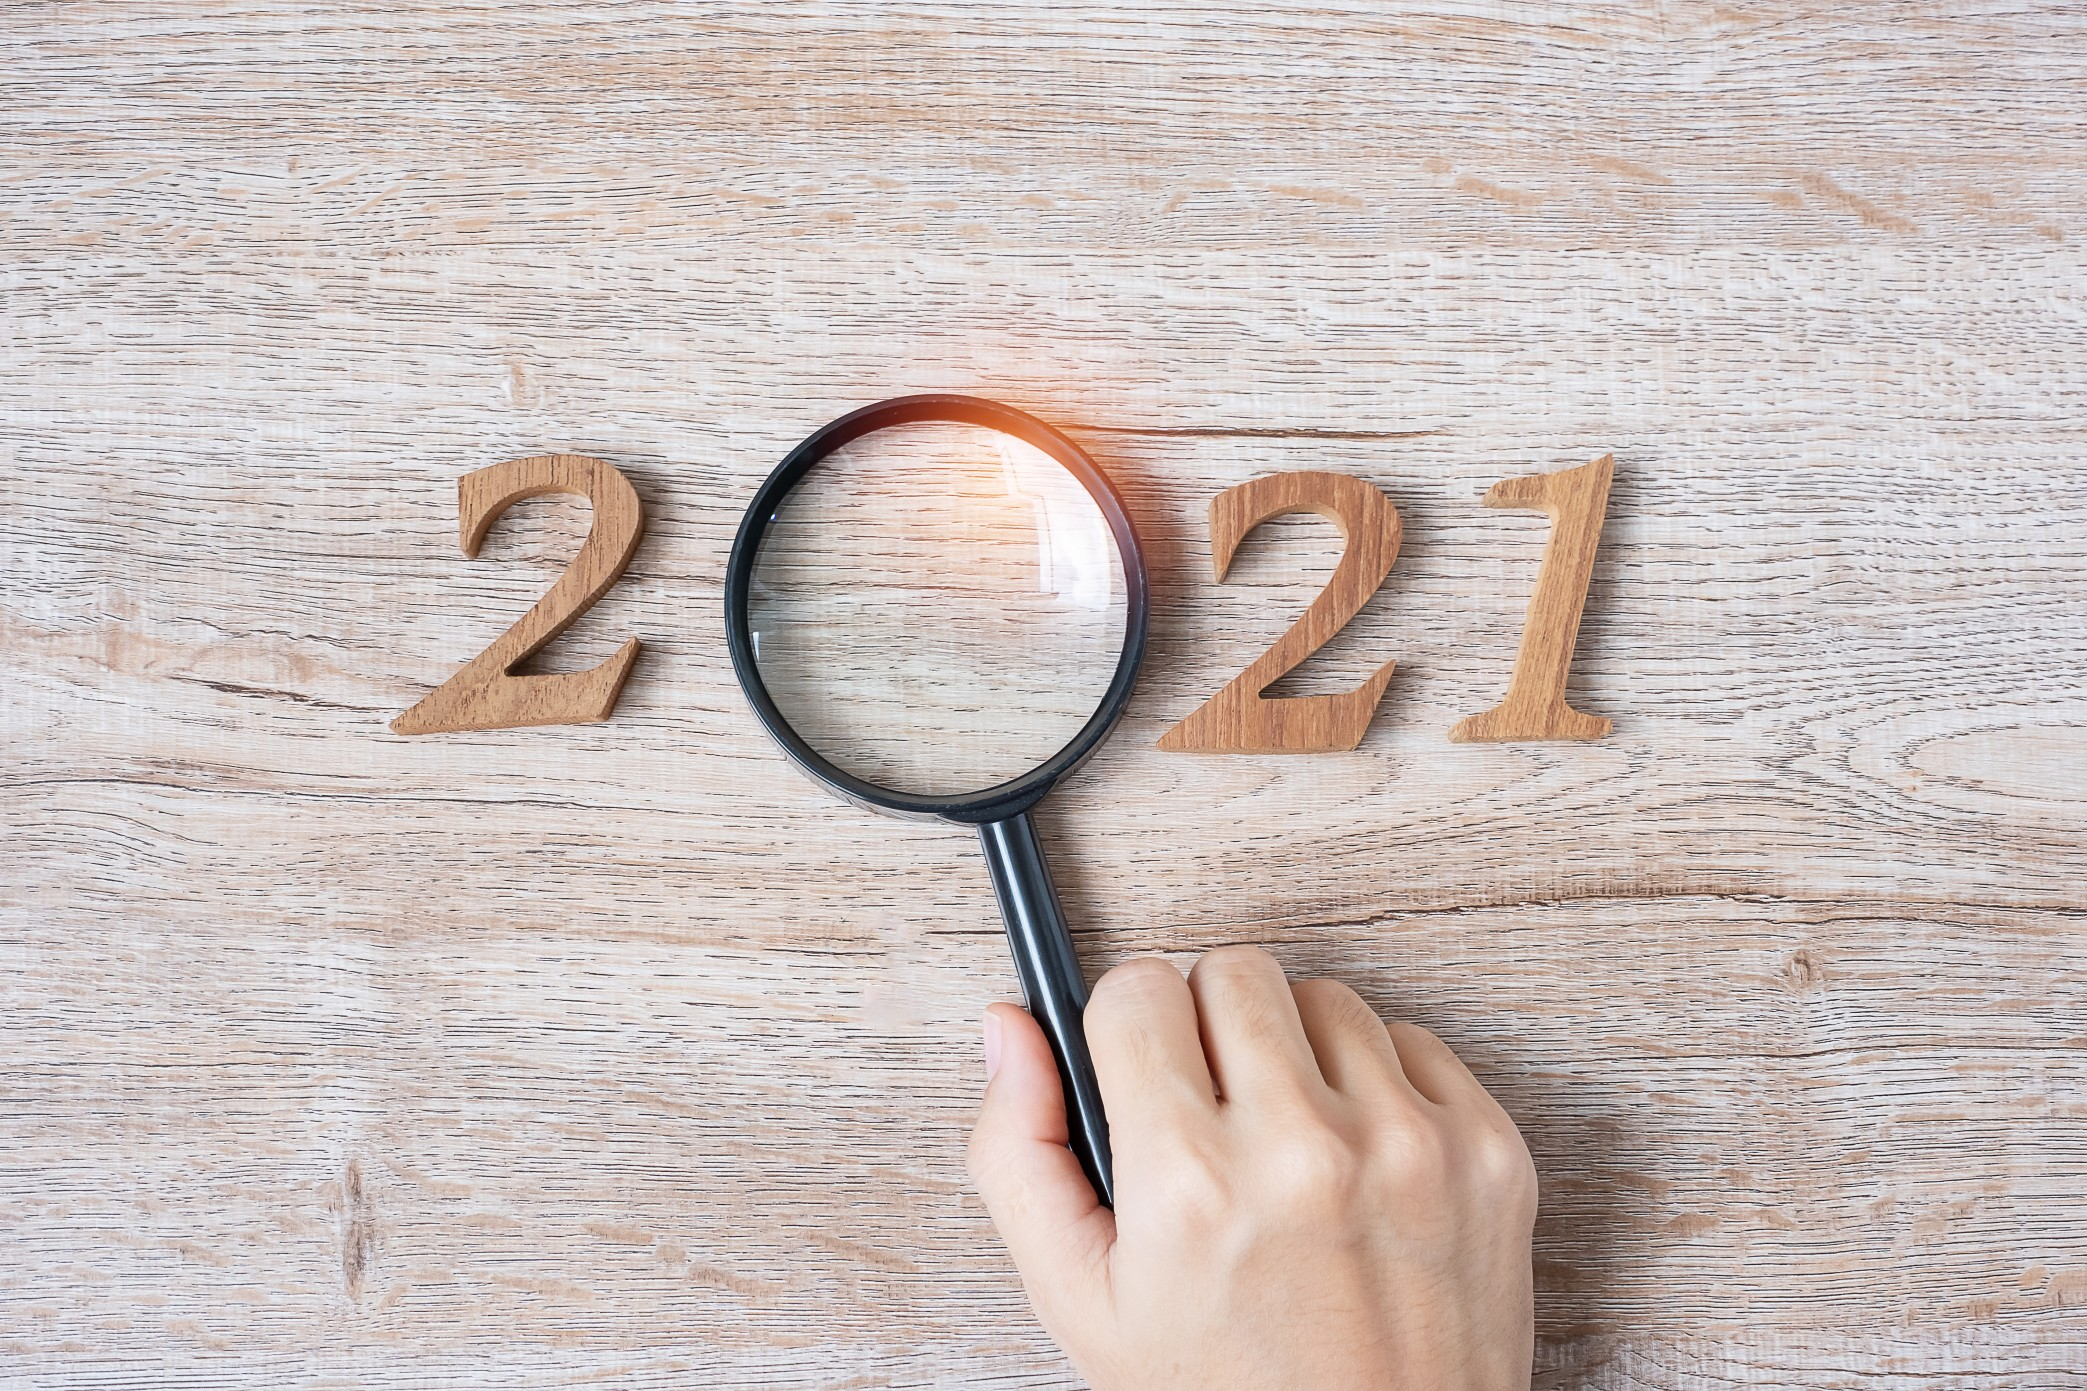 22 Things a Psychic Reading Can Tell You About 2021